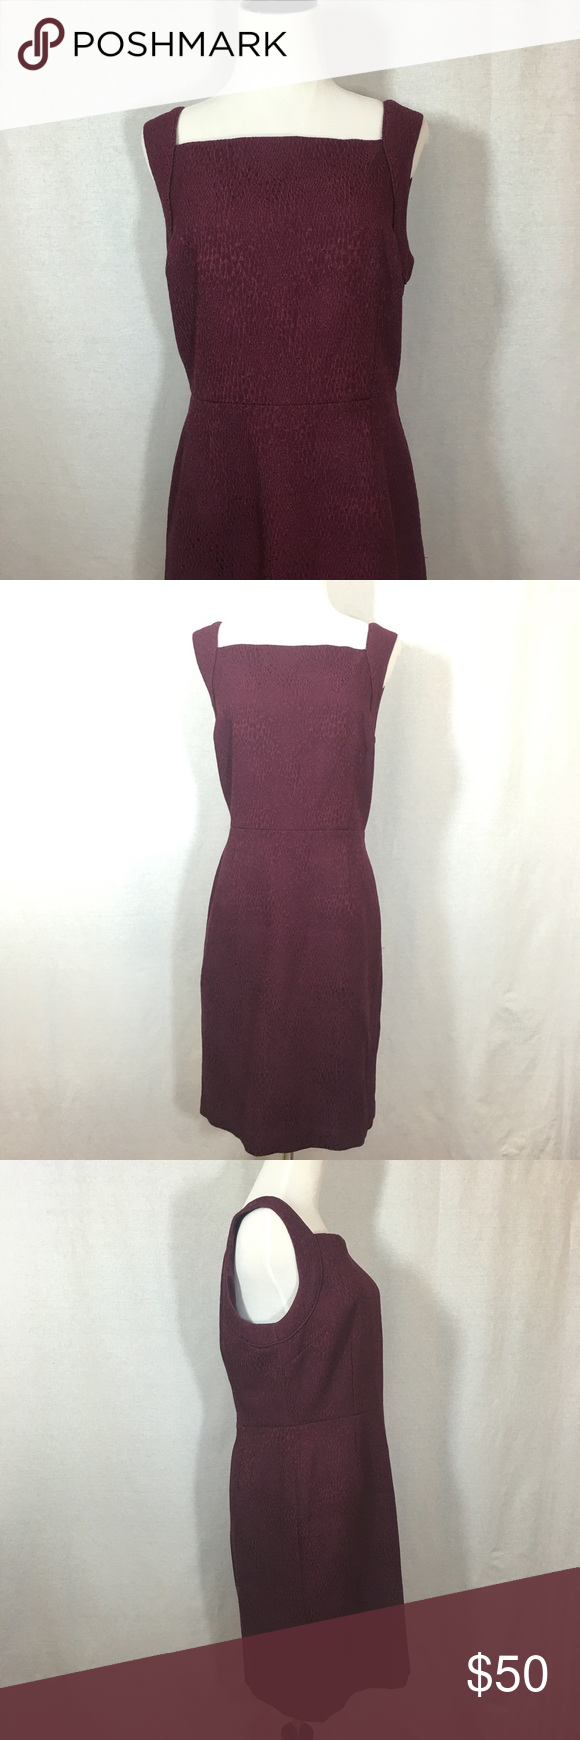 Banana Republic Dress Gently worn dress in a burgundy/ dark red color. The fabric has a design within it for added style. Banana Republic Dresses